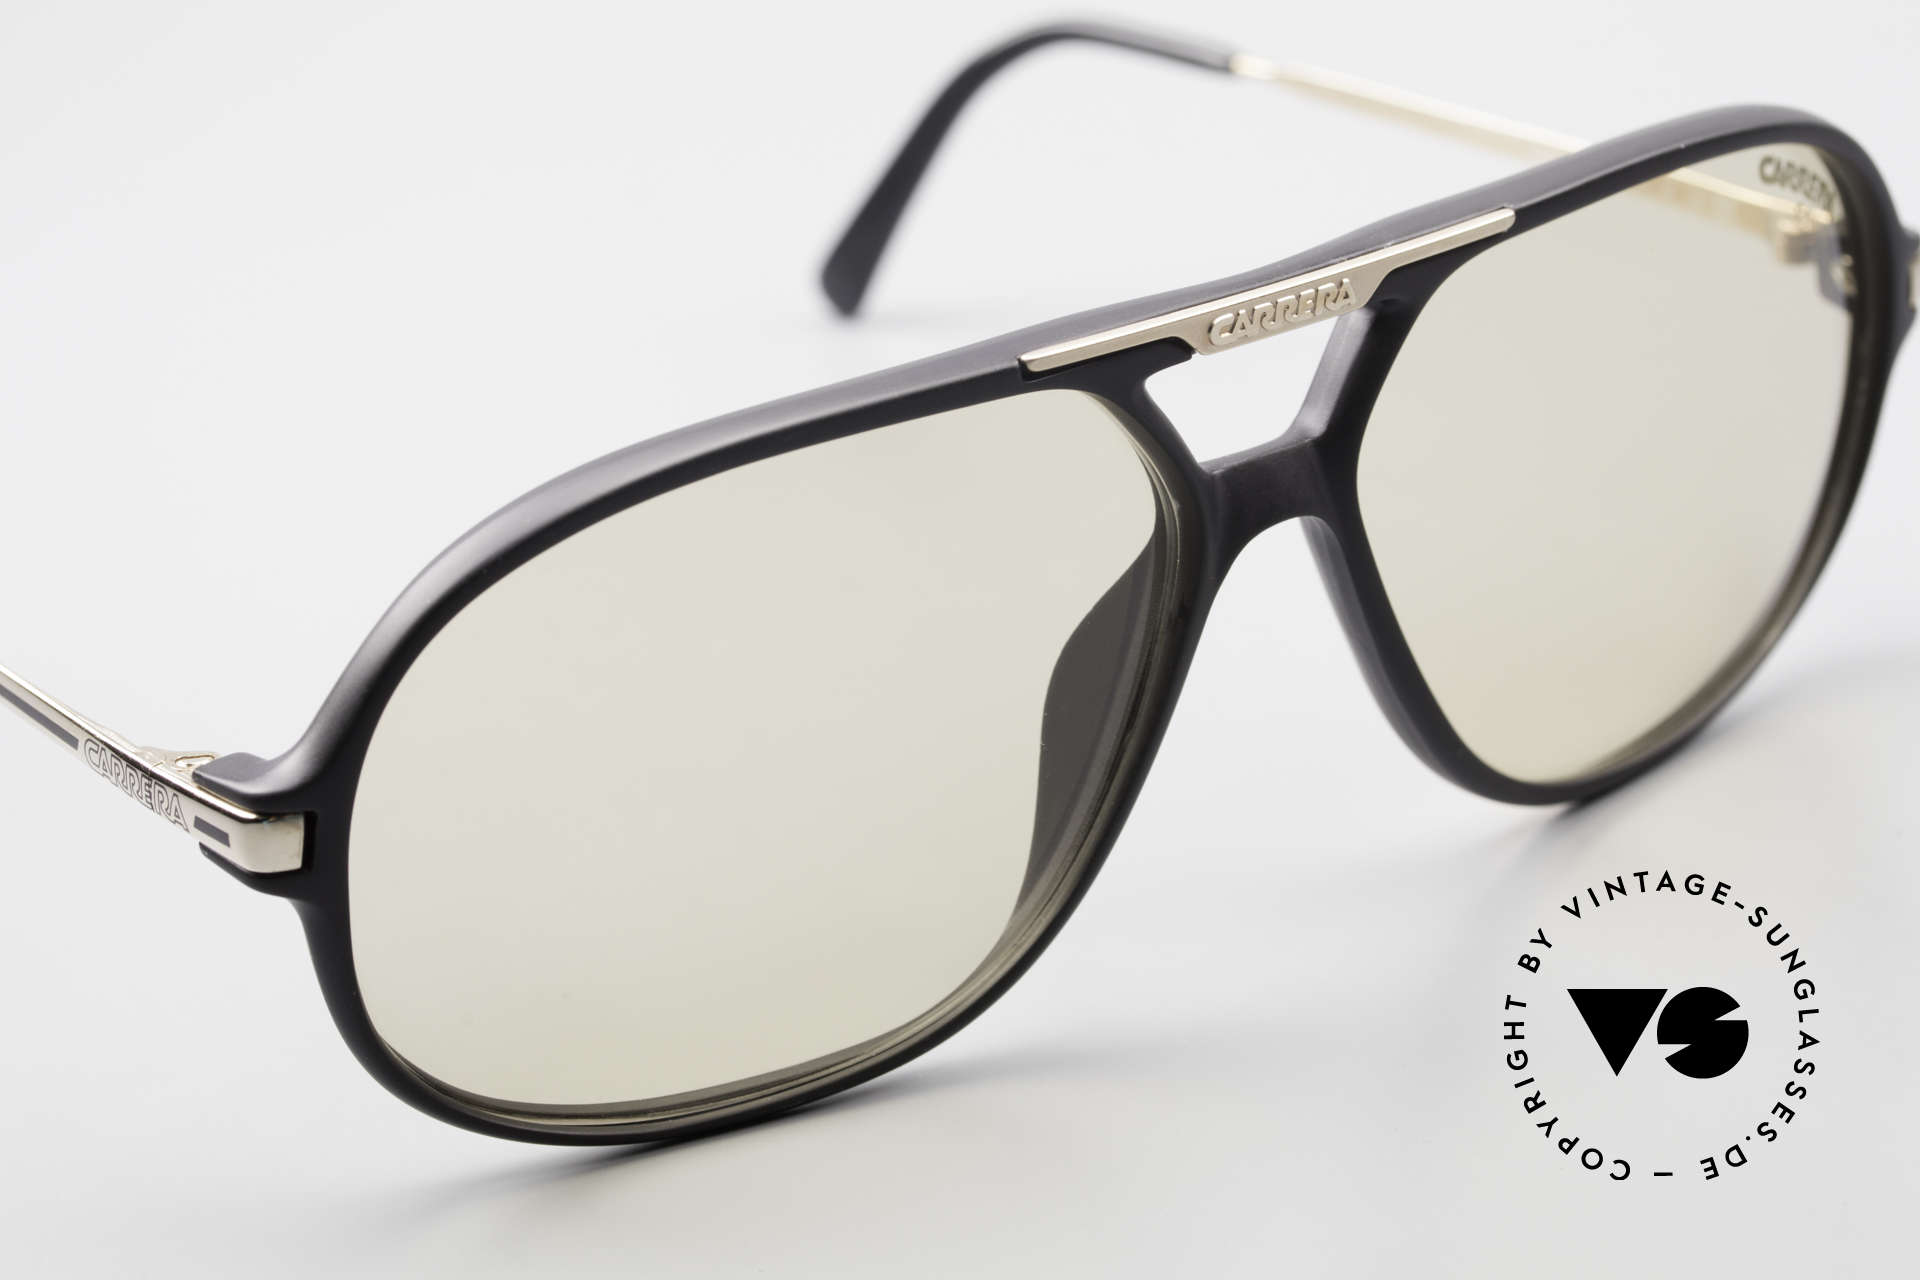 Carrera 5411 C-Matic With Extra Polarized Lenses, unworn rarity - single and true VINTAGE commodity, Made for Men